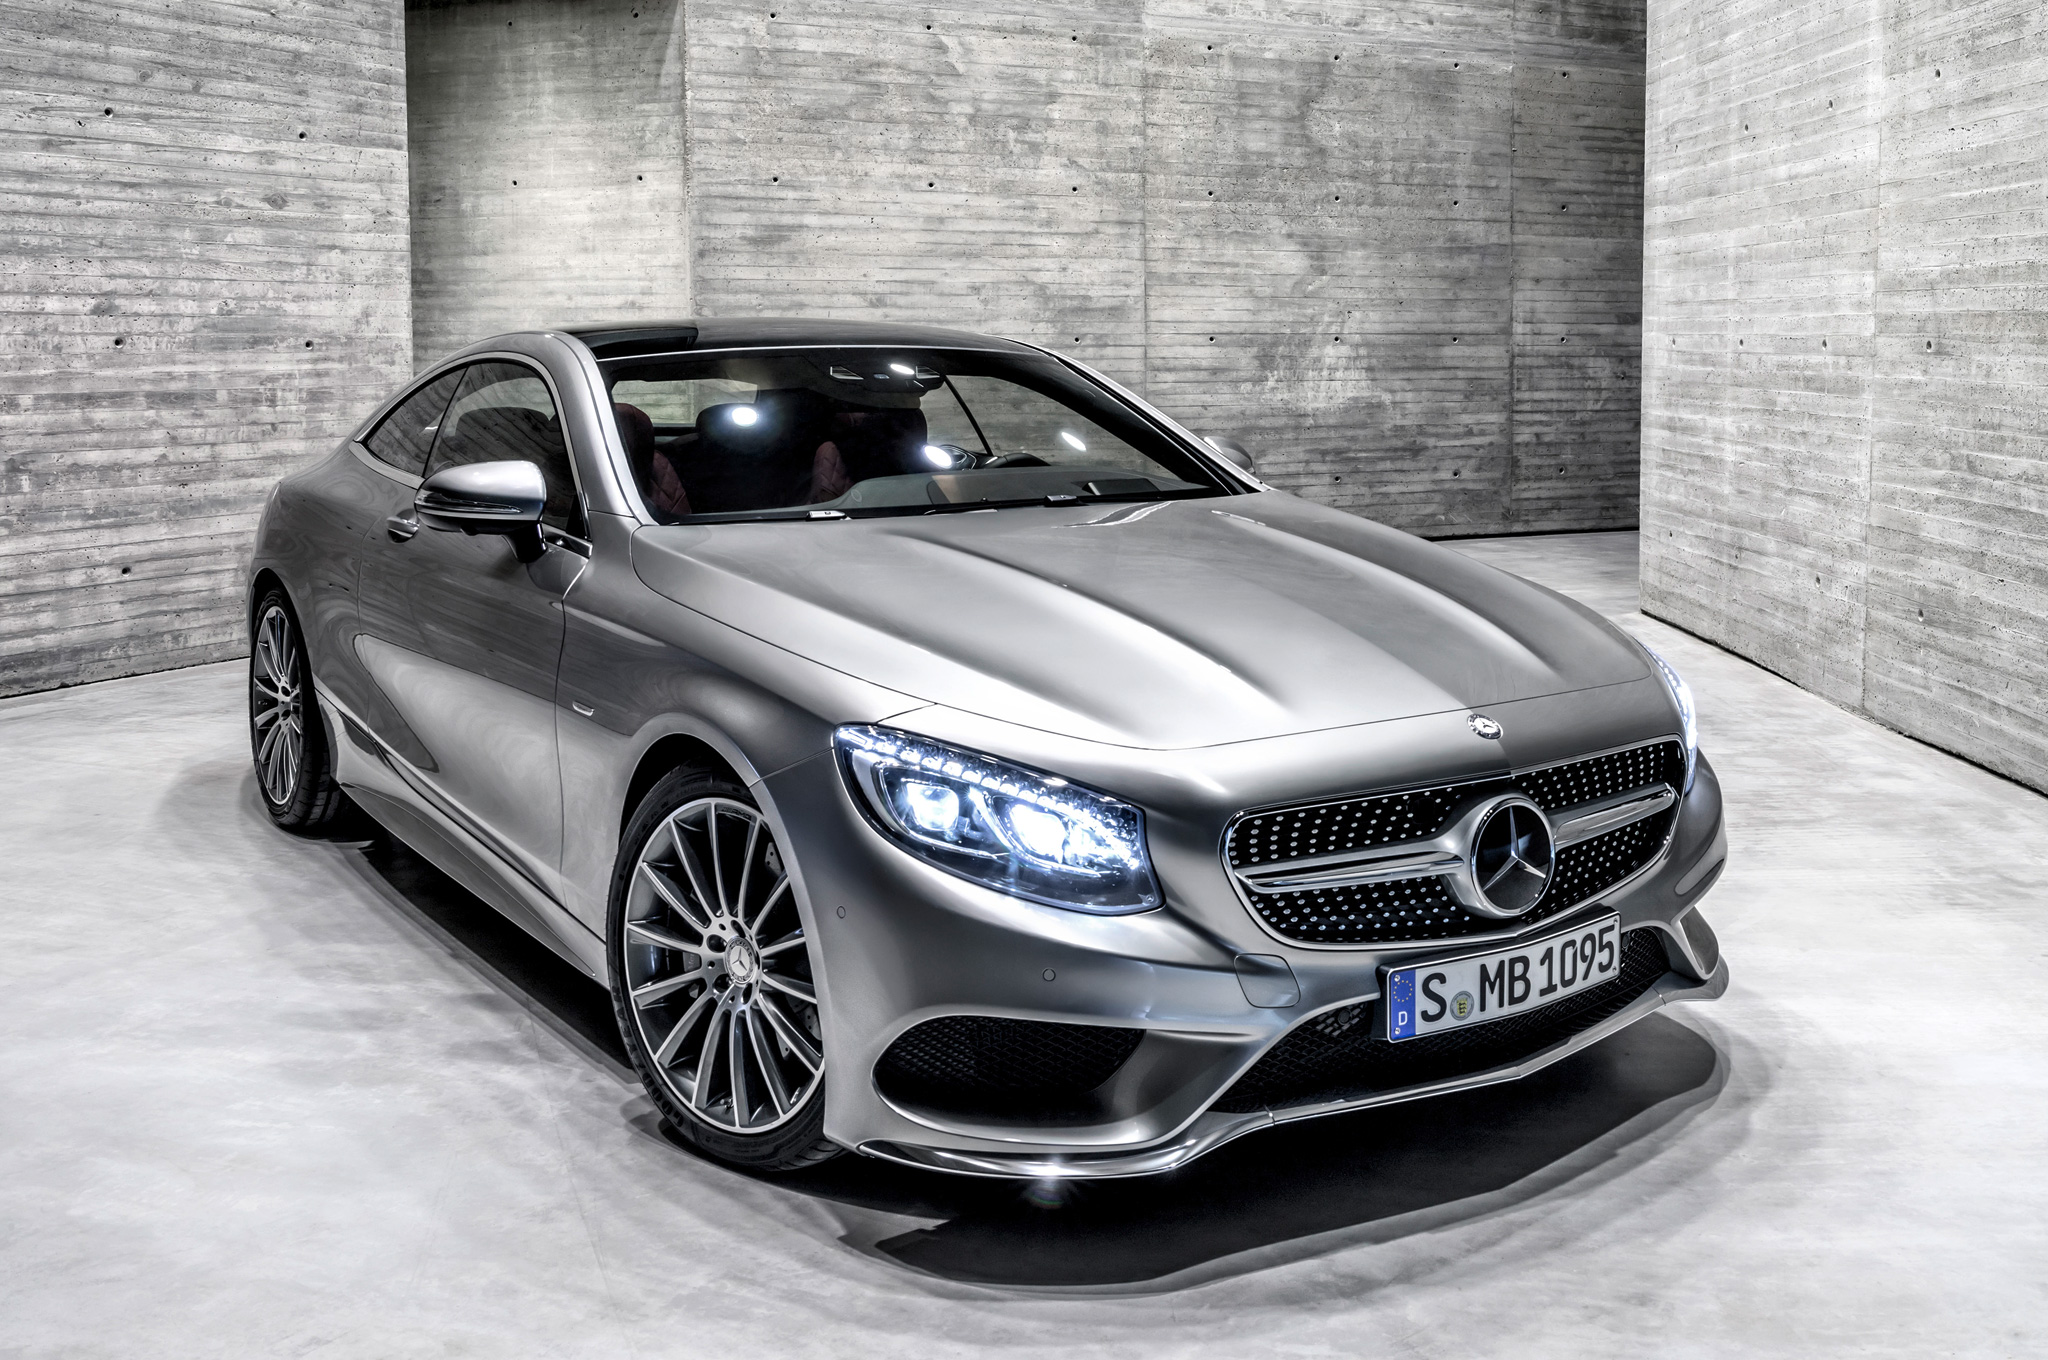 2015 mercedes-benz s-class coupe lights on #888 | cars performance